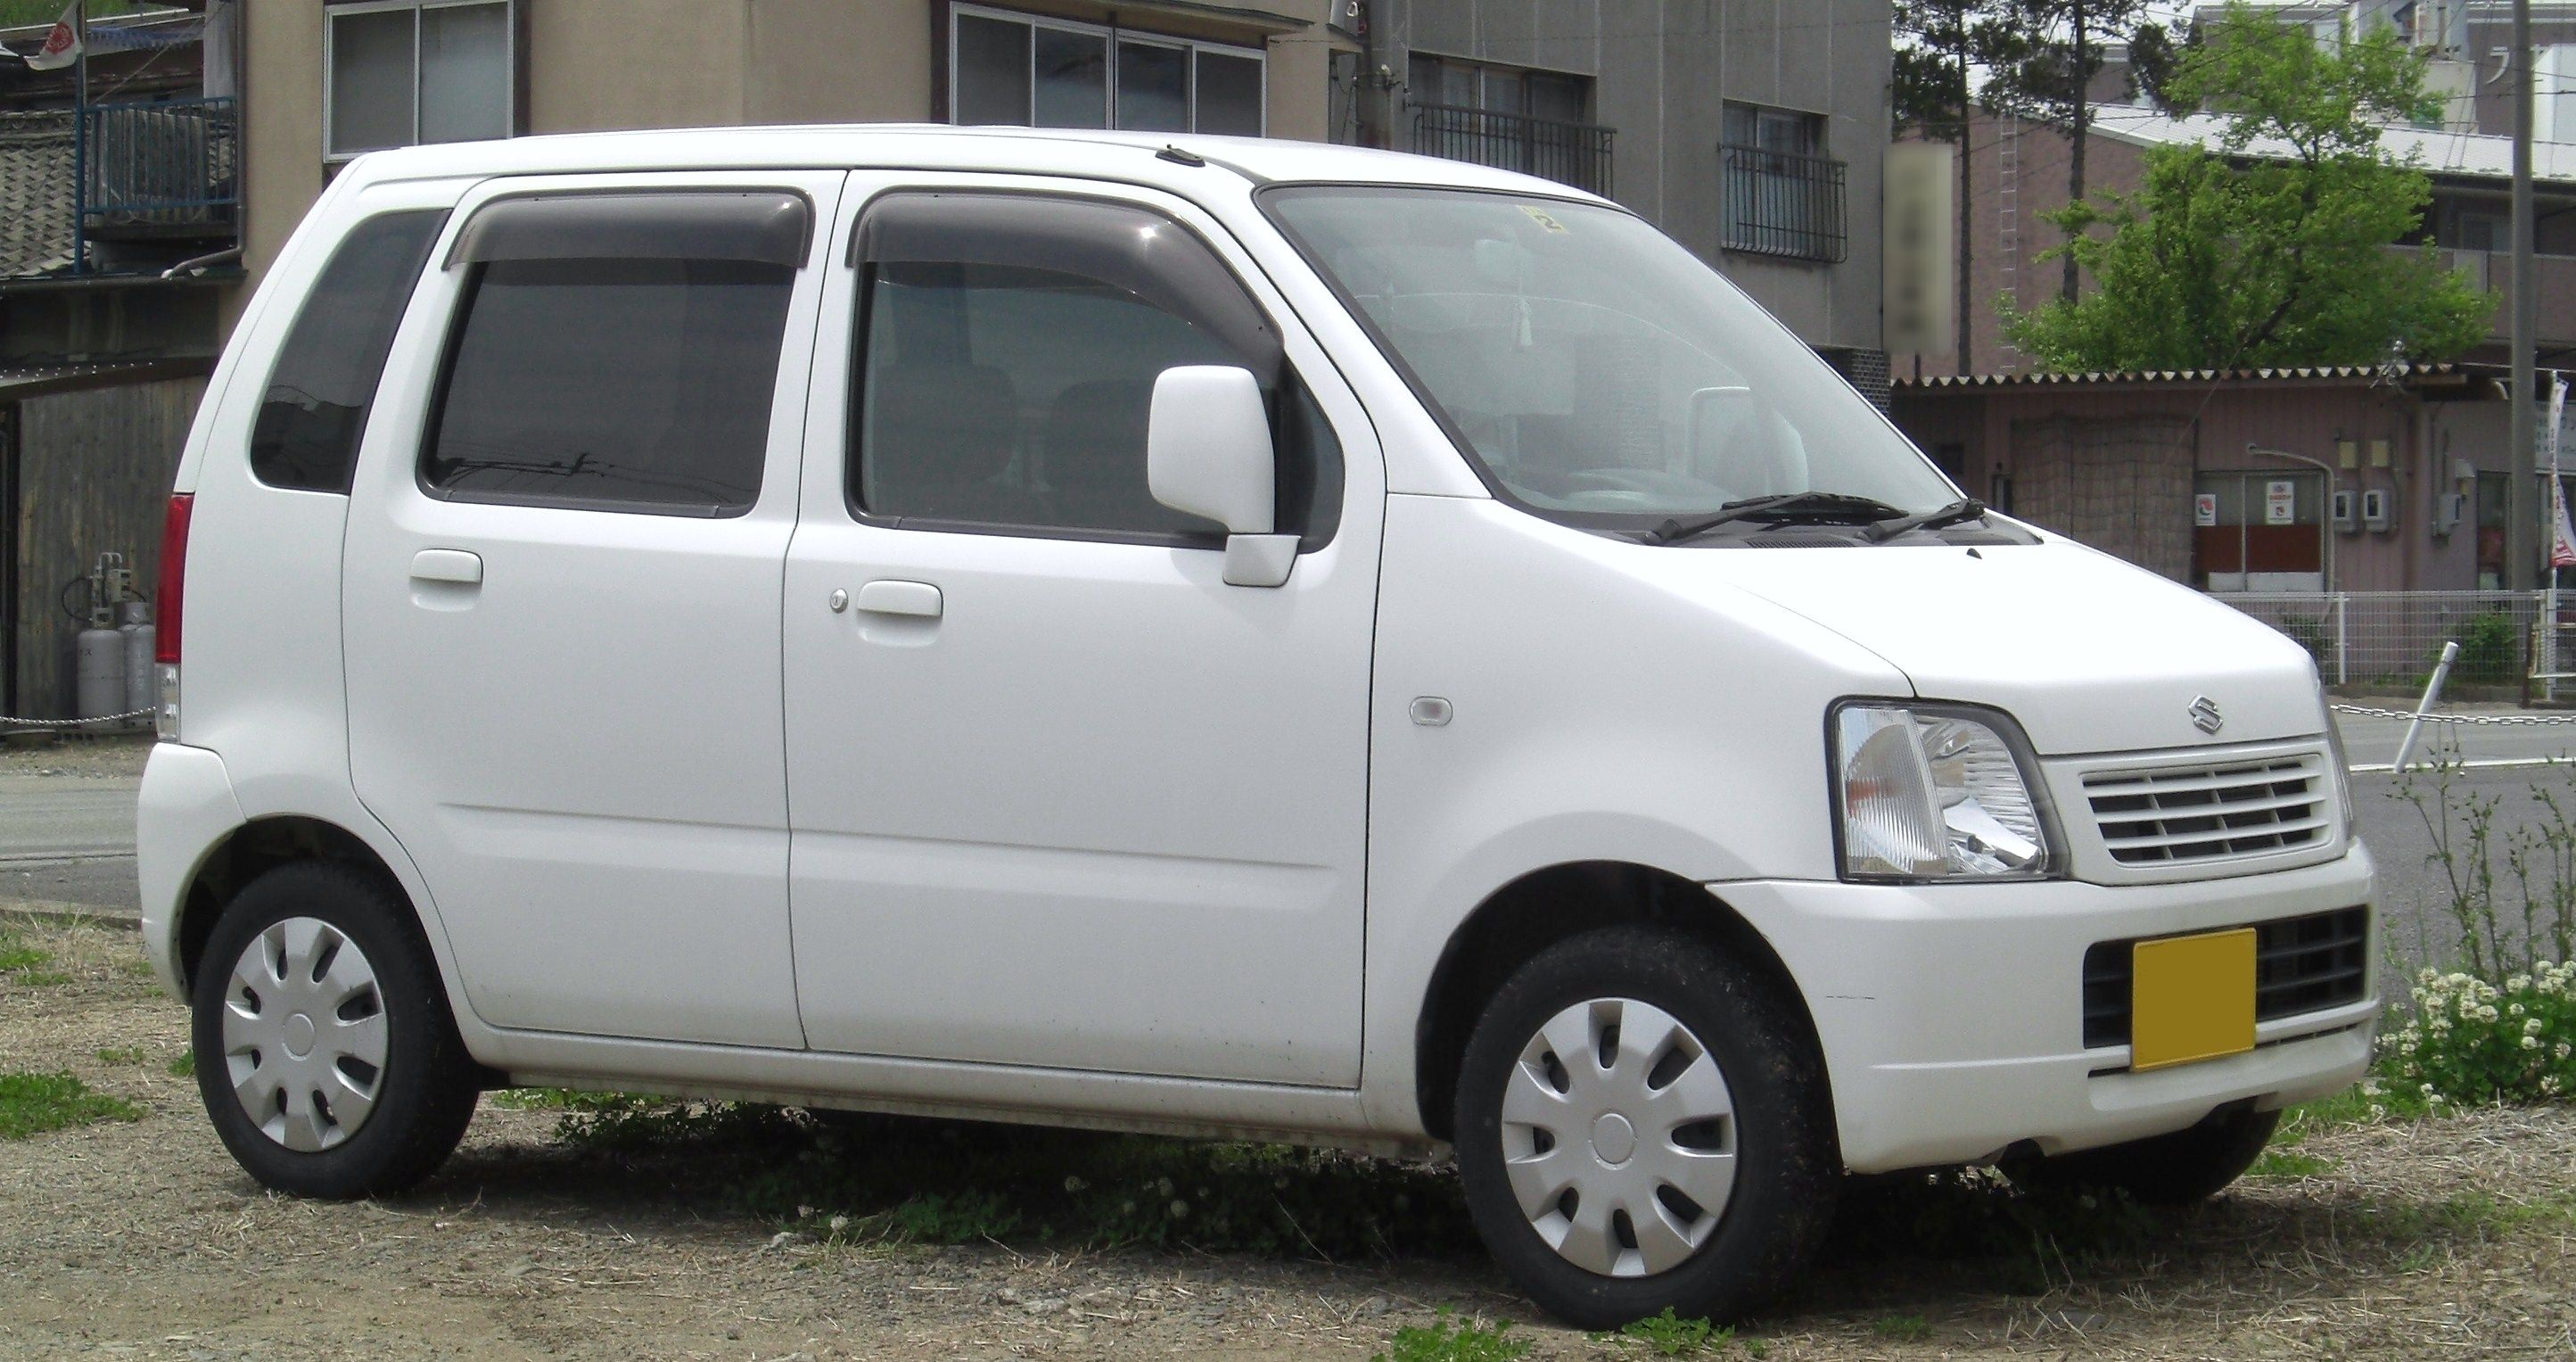 2001 suzuki wagon r 1 2 glx related infomation specifications weili automotive network. Black Bedroom Furniture Sets. Home Design Ideas